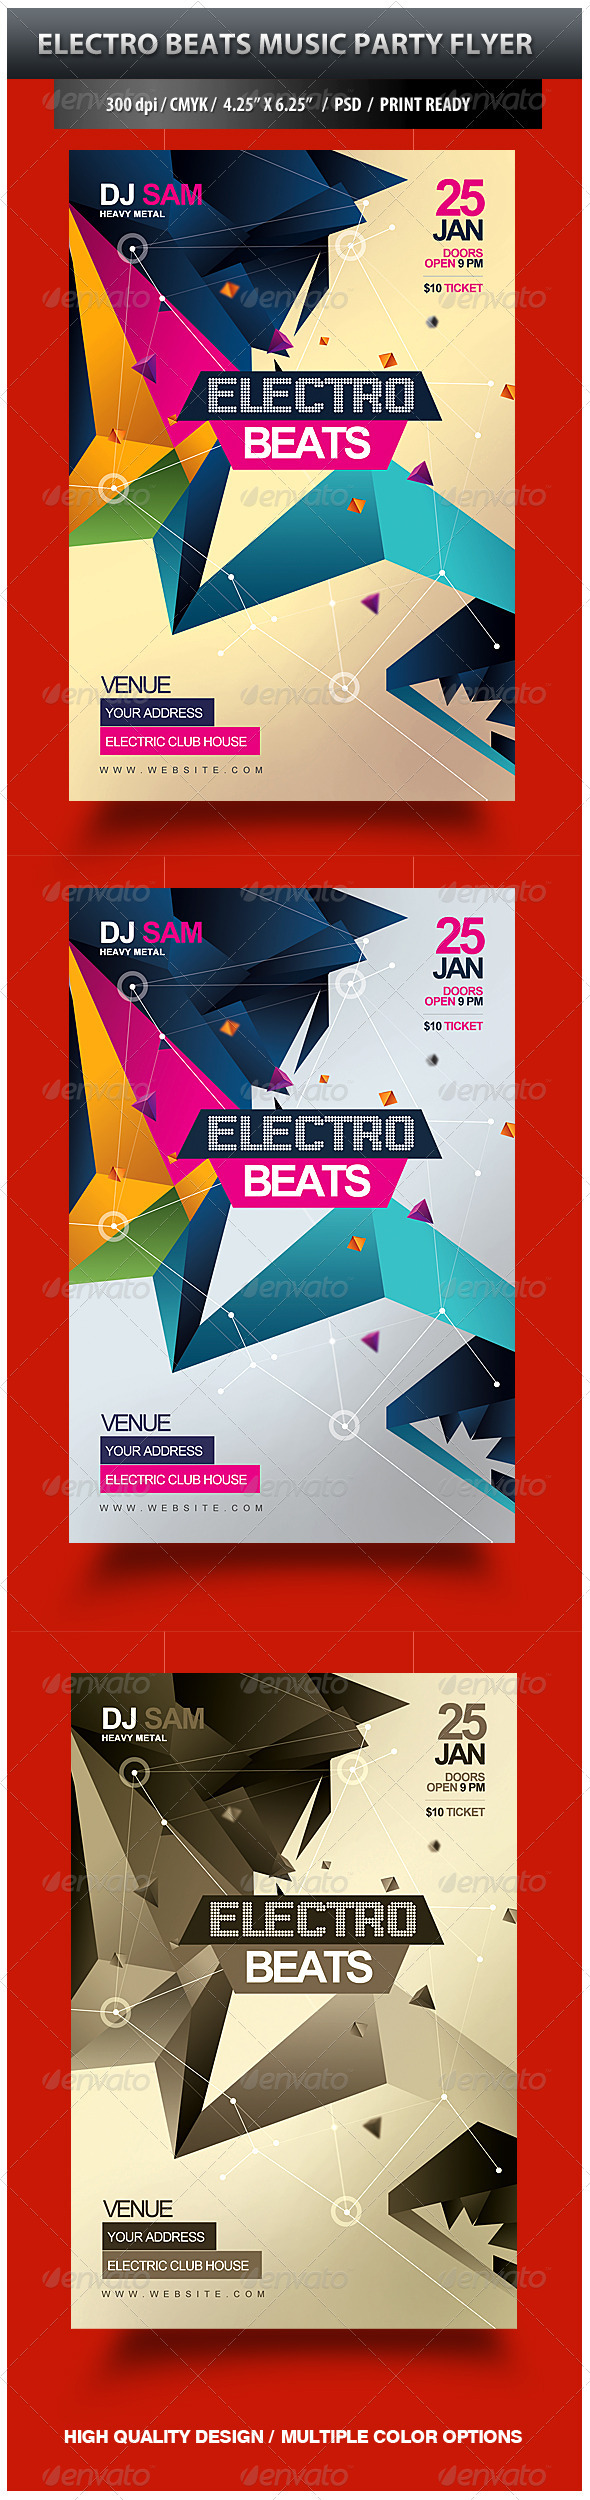 Electro Beats Music Party Flyer - Clubs & Parties Events